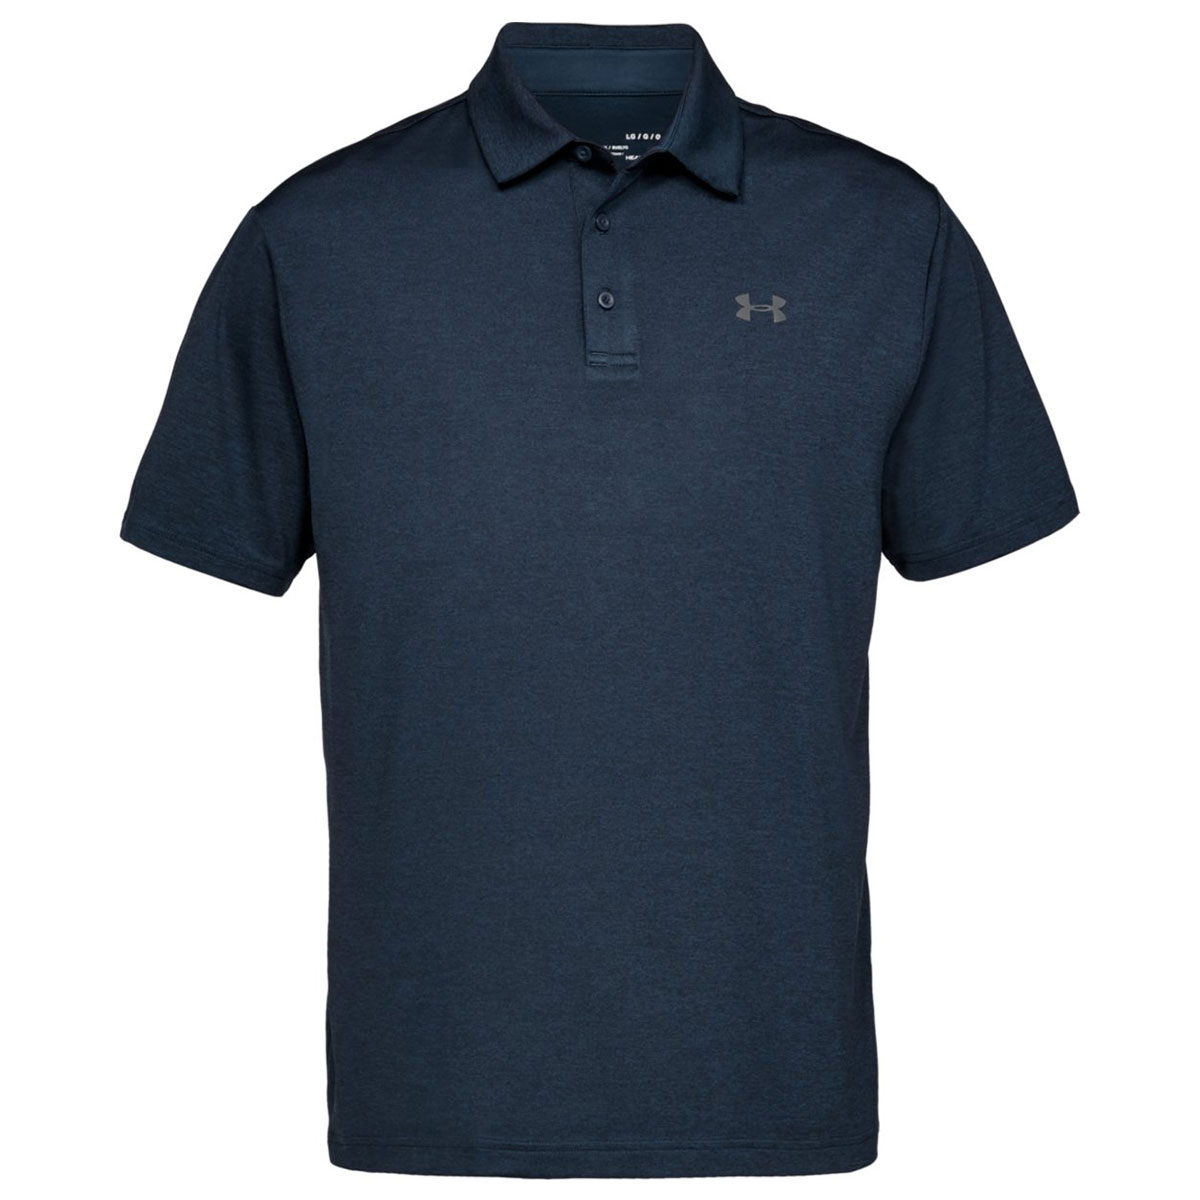 Under-Armour-Mens-2019-Playoff-Polo-2-0-Breathable-Light-Stretch-Polo-Shirt thumbnail 9